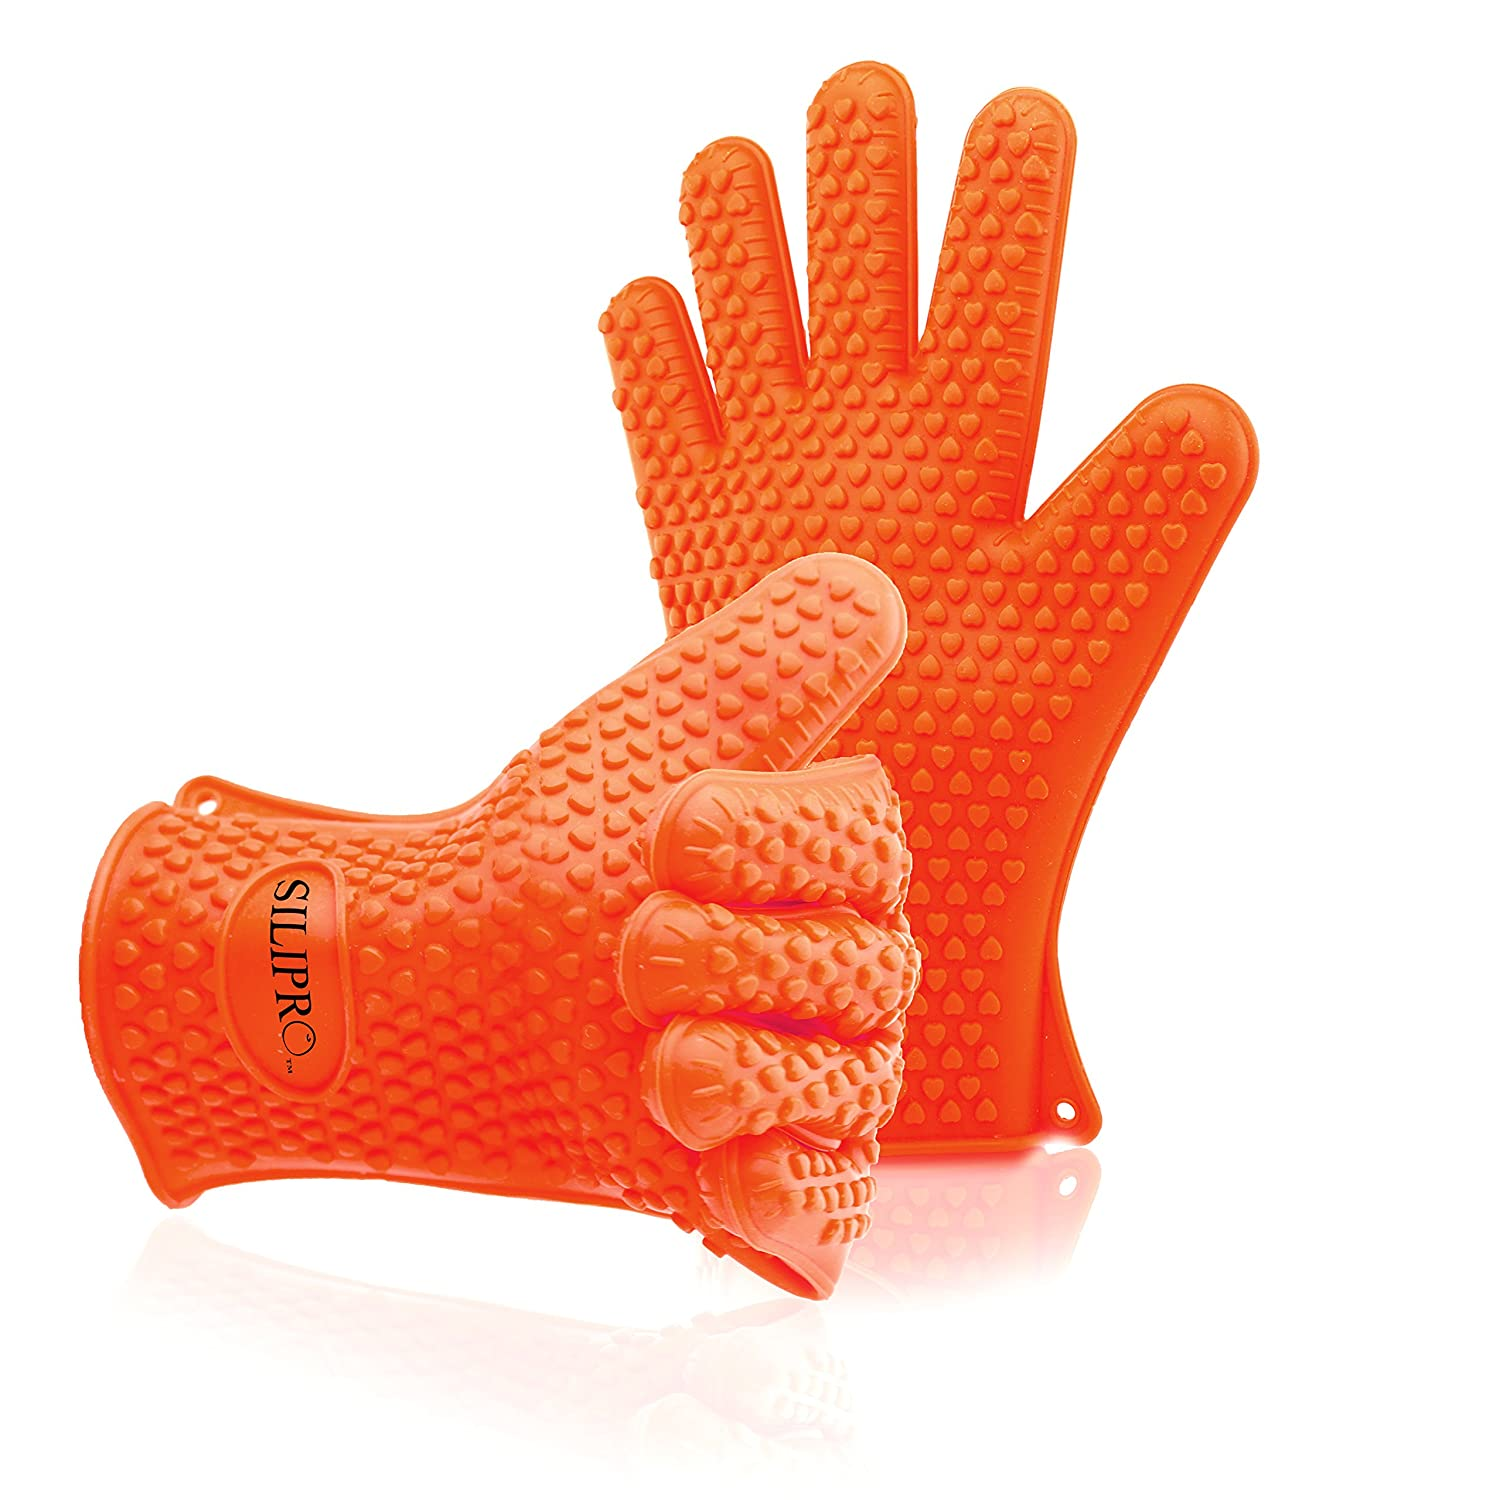 #1 Silicone bbq Gloves - Heat Resistant - High Temperature Waterproof Insulated Kitchen Oven Mitts for BBQ - Long Silicone Rubber Grip Best for Grill - Pot Holders Two Handed for Men & Women - One Size Fit - One Pair - [Orange] 1pair 932f new design bbq grill red silicone gloves heat resistant bbq gloves microwave oven glovesen 407